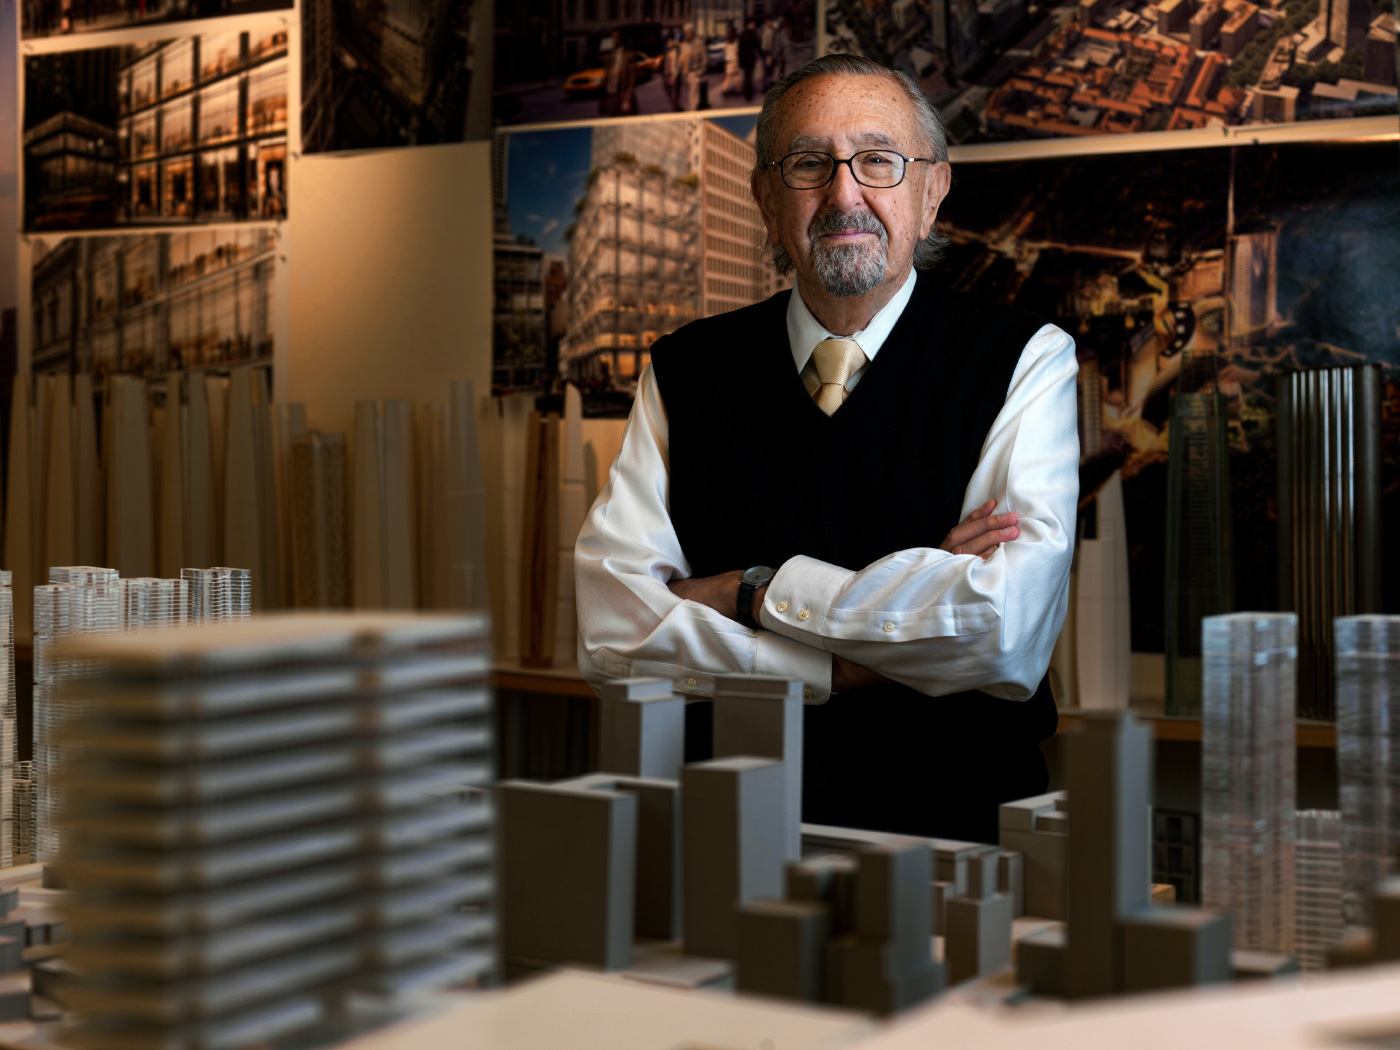 An older man, César Pelli, standing among building models